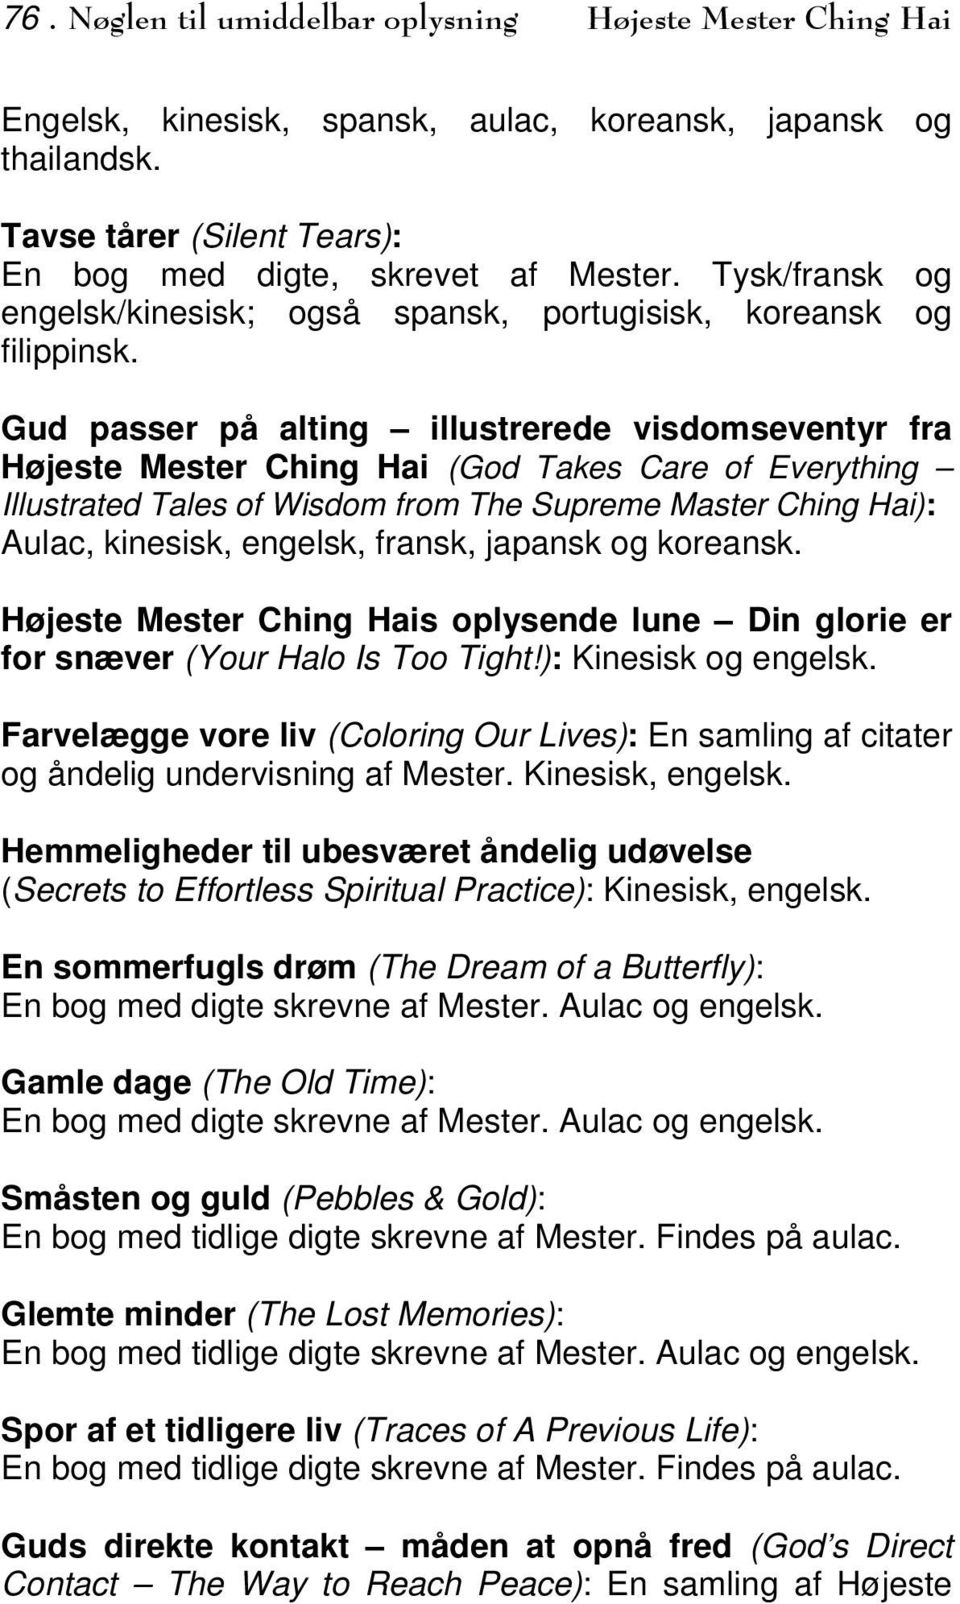 Gud passer på alting illustrerede visdomseventyr fra Højeste Mester Ching Hai (God Takes Care of Everything Illustrated Tales of Wisdom from The Supreme Master Ching Hai): Aulac, kinesisk, engelsk,